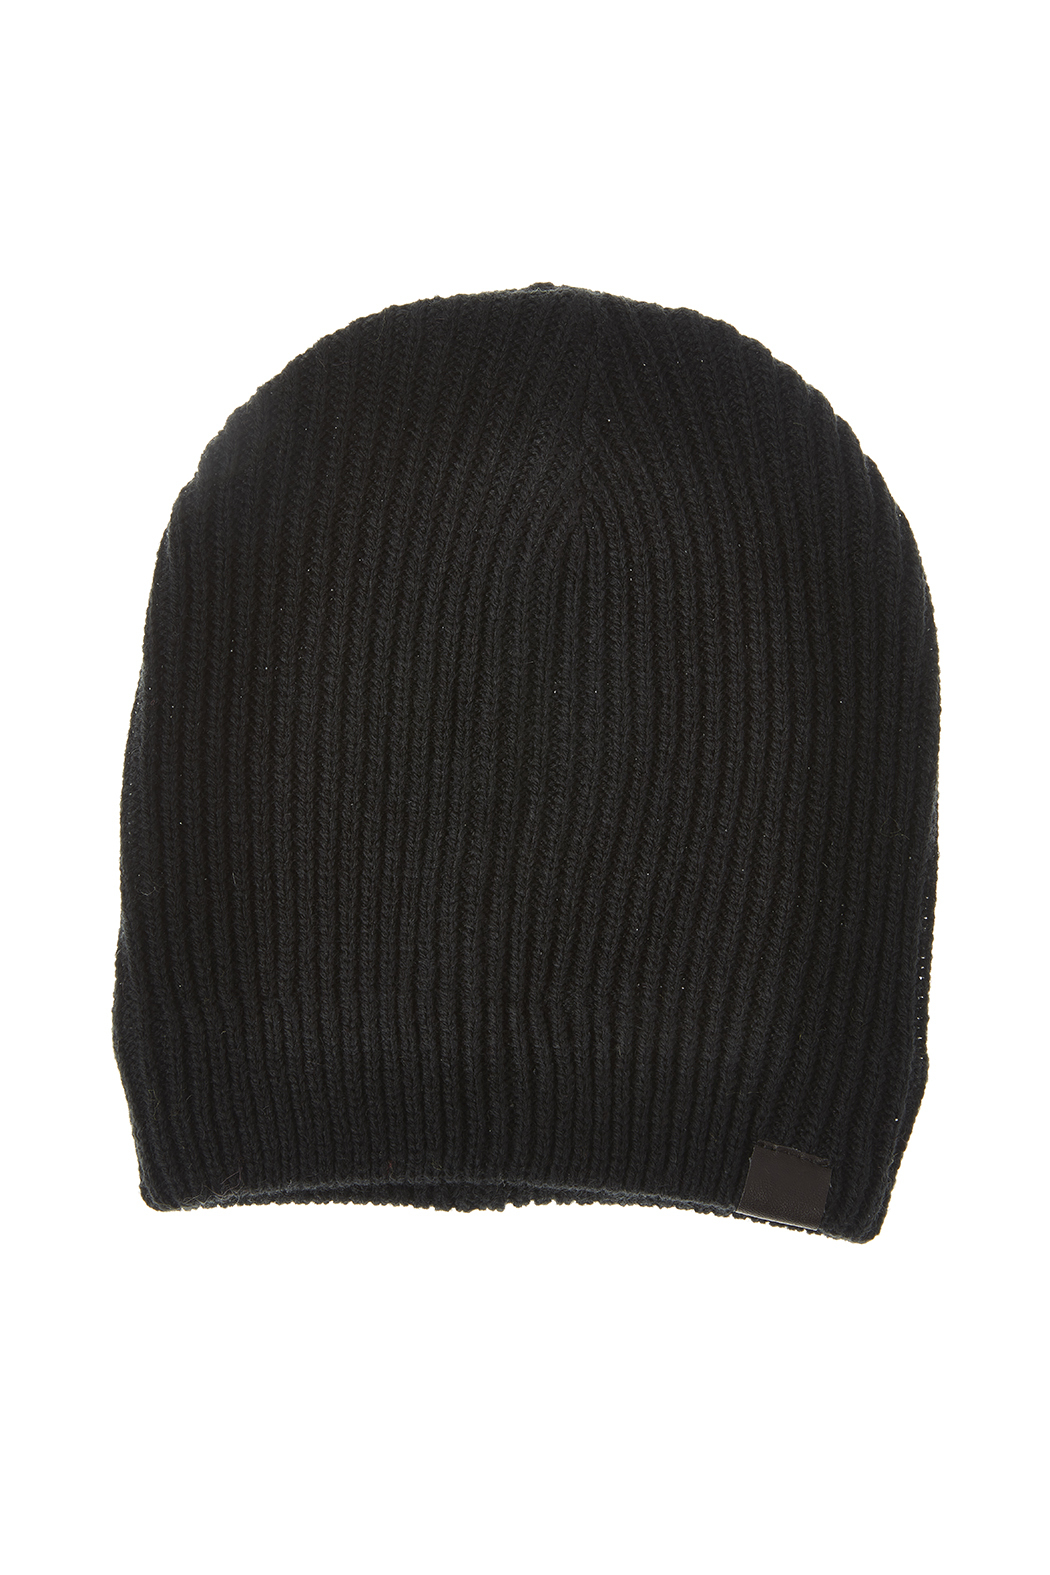 Fort Greene General Store Knit Skull Cap - Front Cropped Image